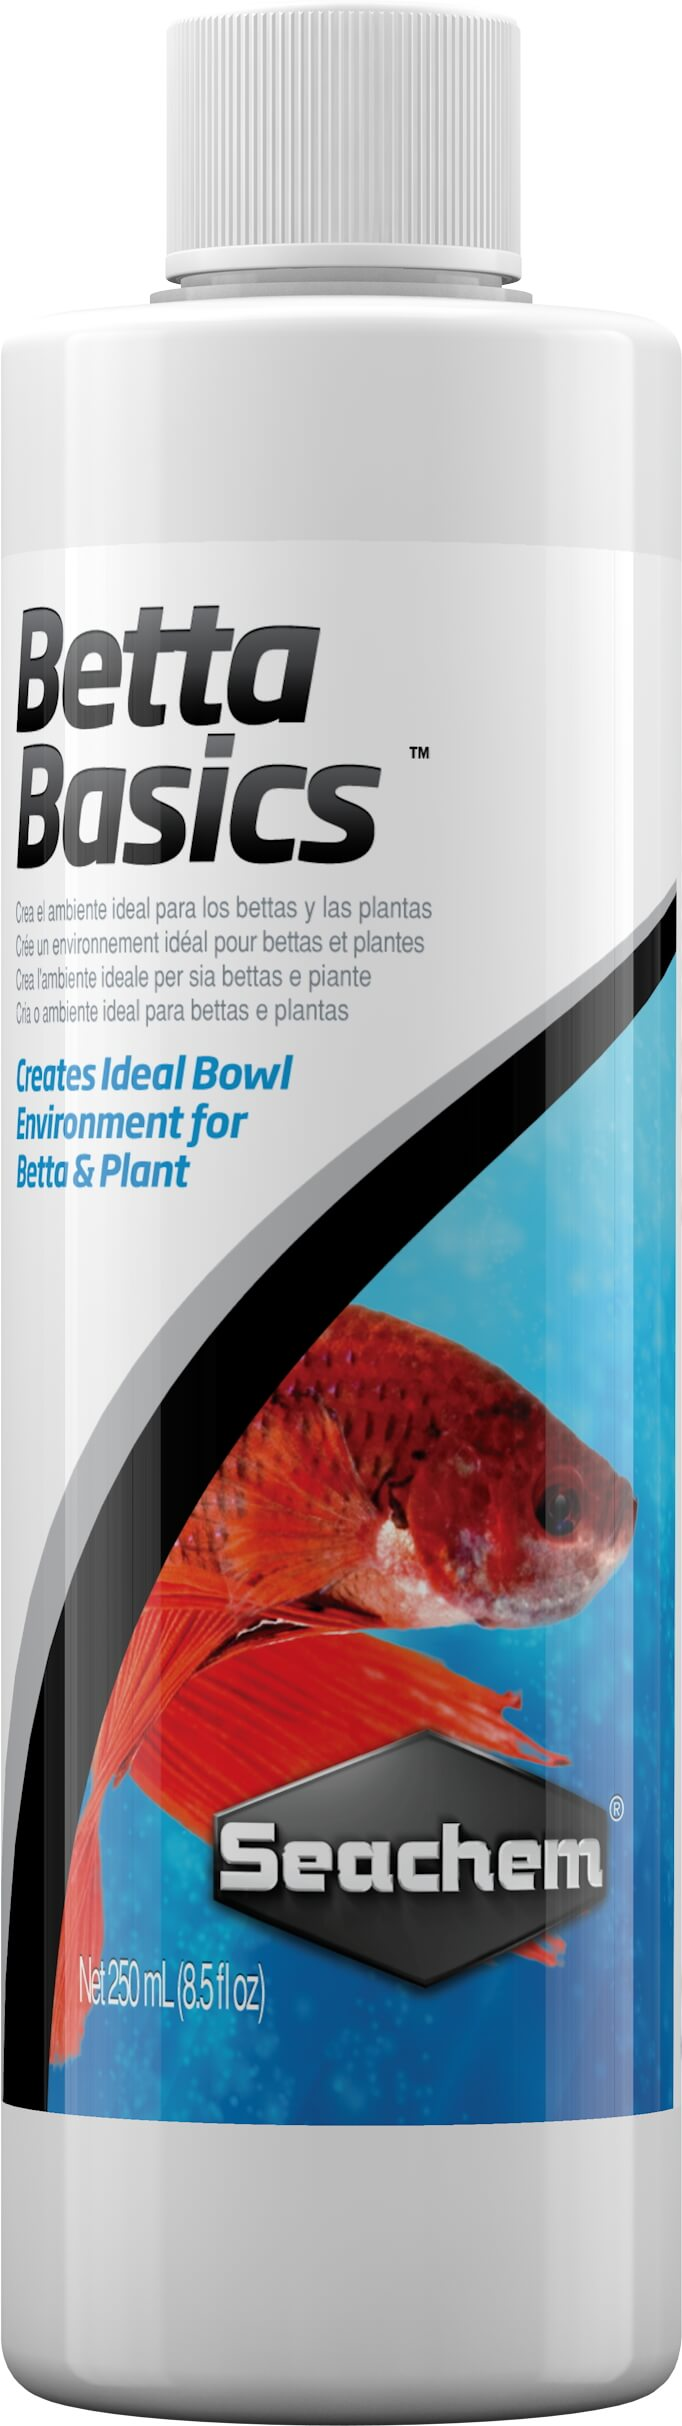 Betta Basics 250ml